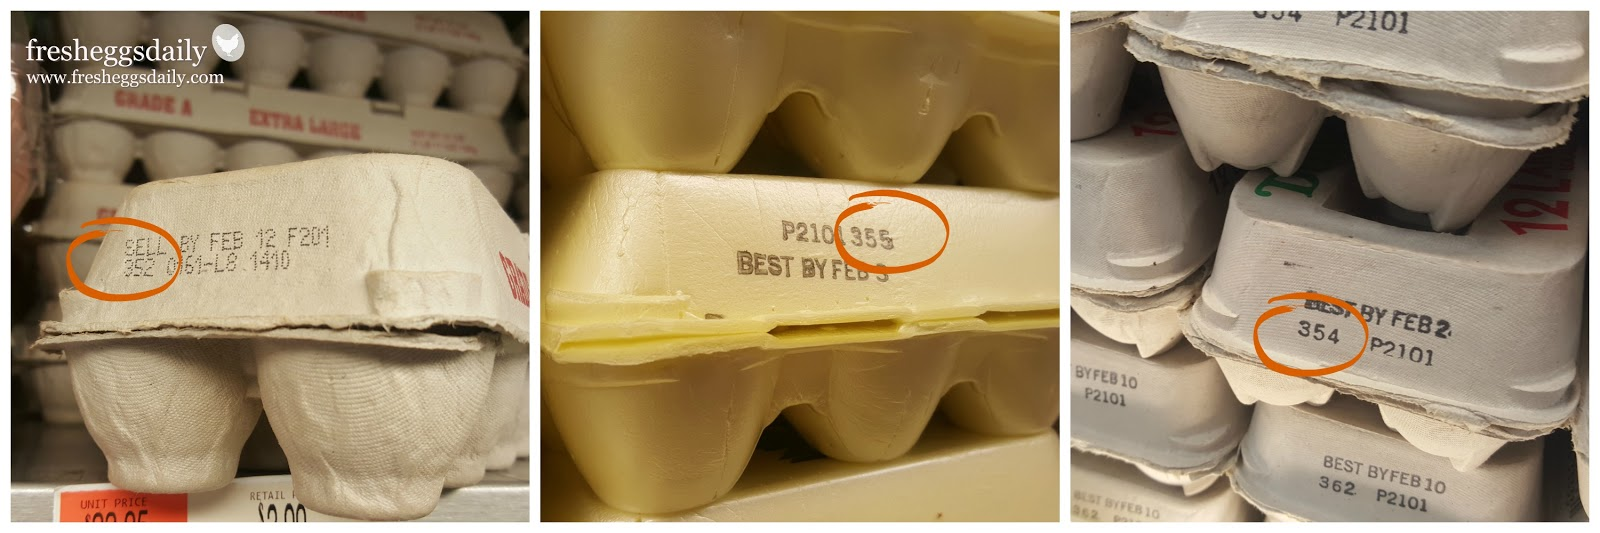 egg carton code dating Code dates: egg processors  expiration dates can be no more than 30 days from the day the eggs were packed into the carton another type of code dating used.